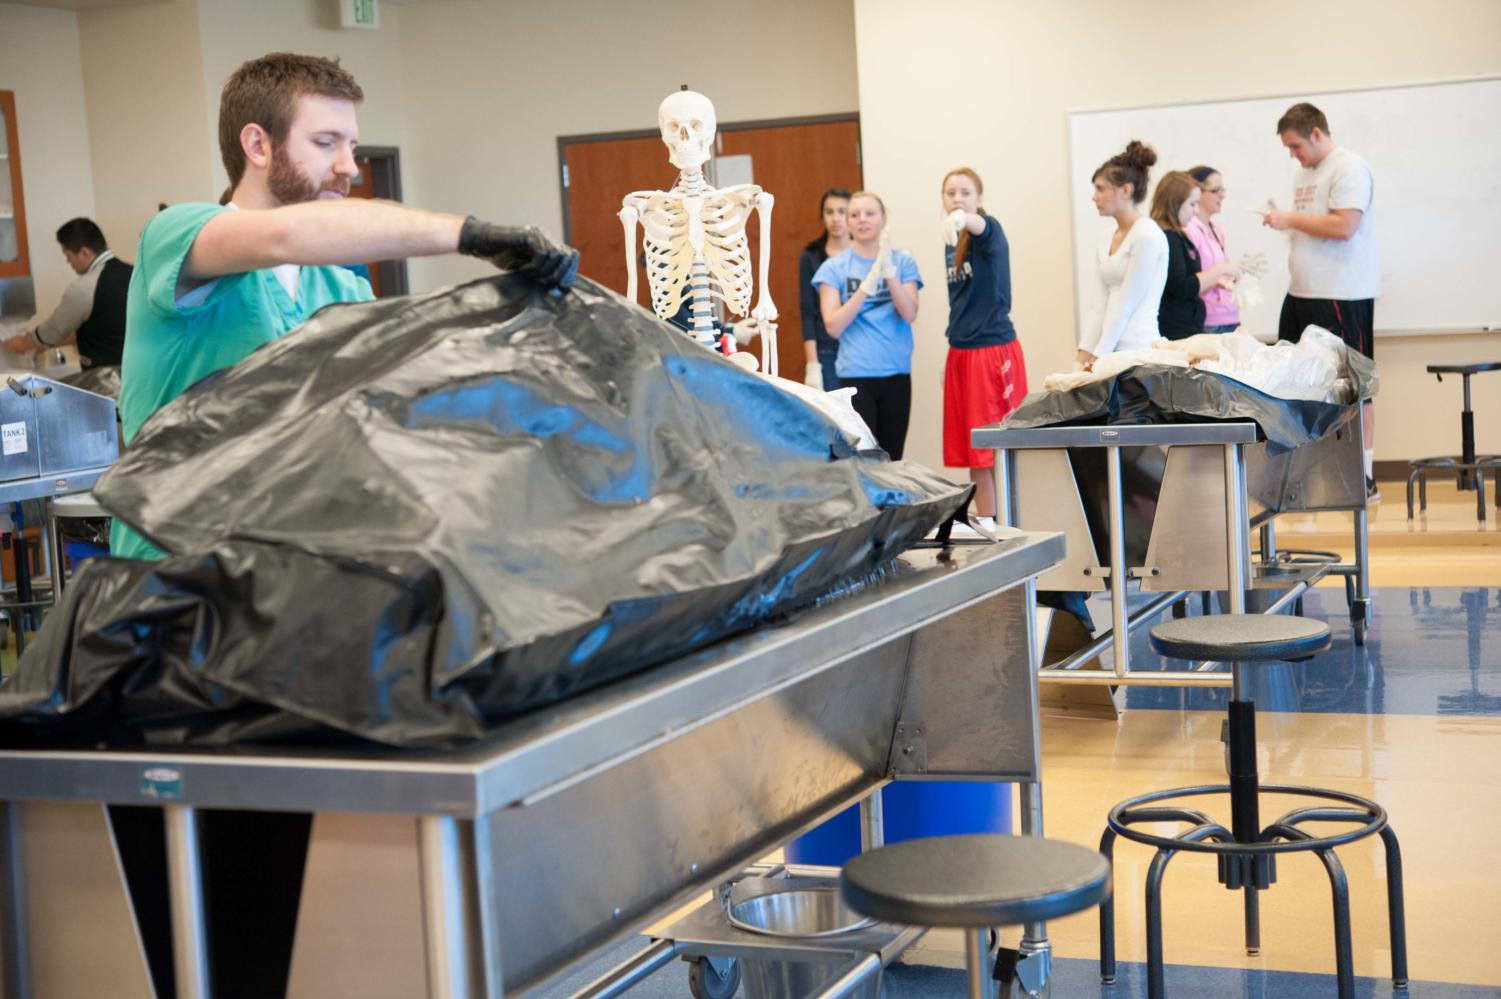 Students from the medical careers class prepares themselves to see the cadaver which they will soon dissect.